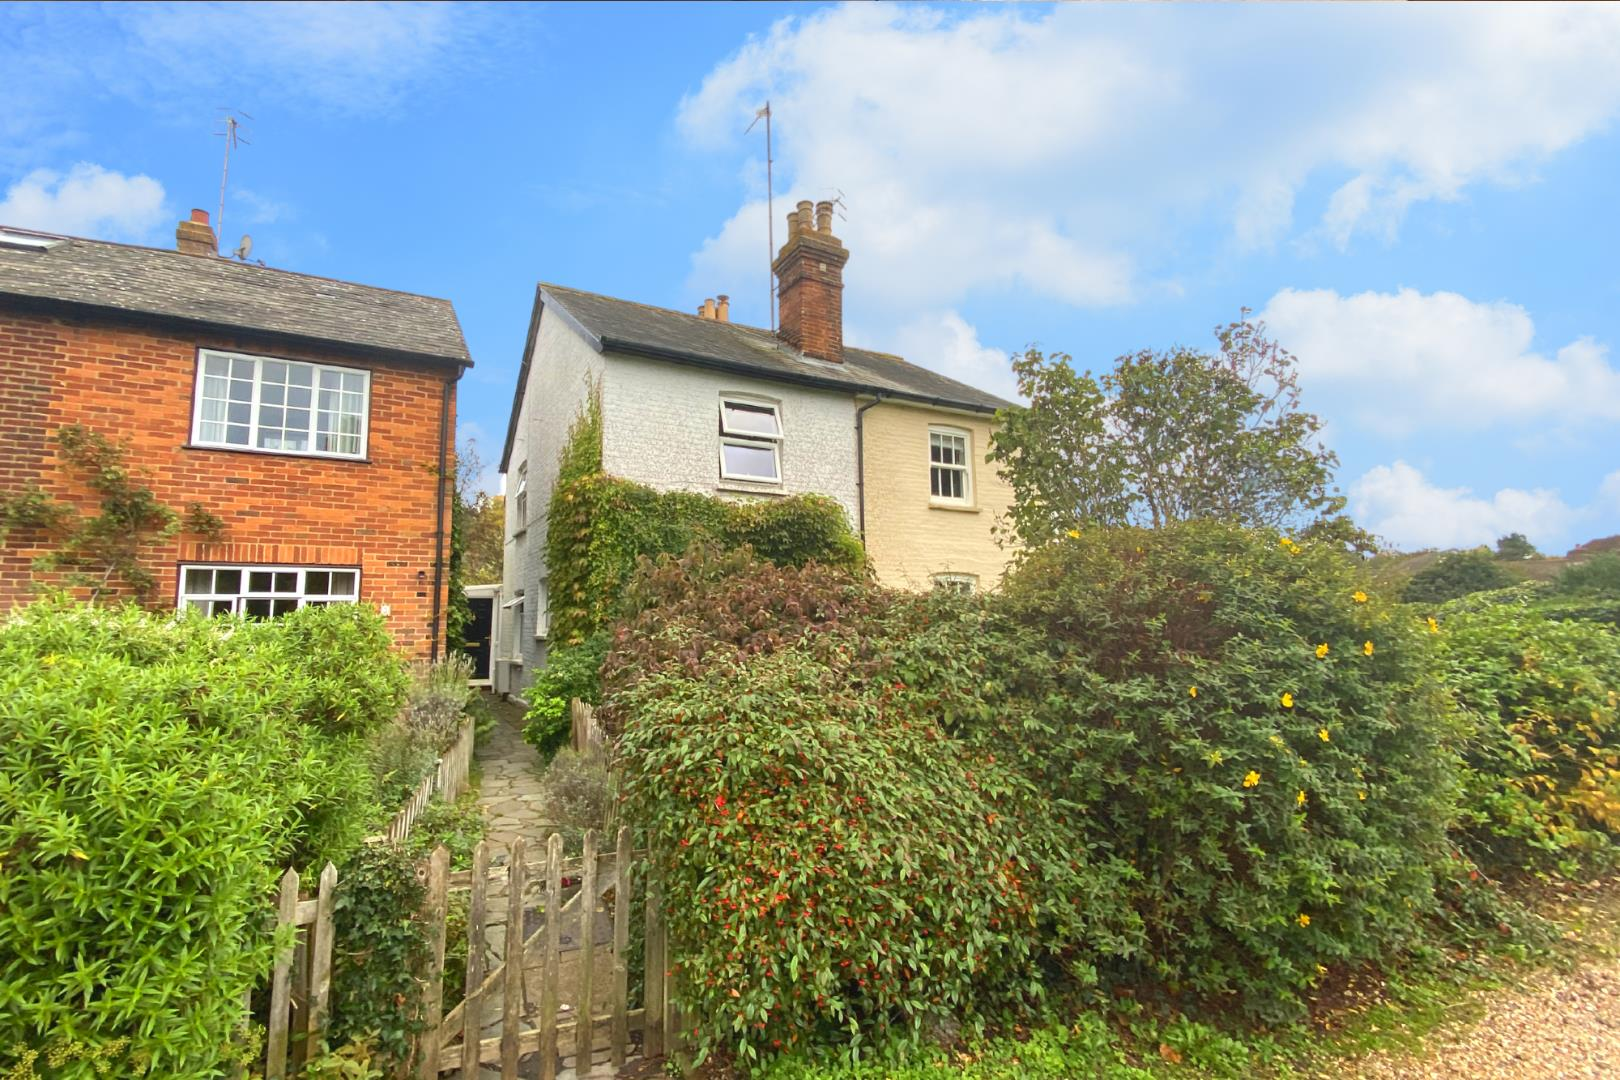 2 bed house for sale in Wonersh 11